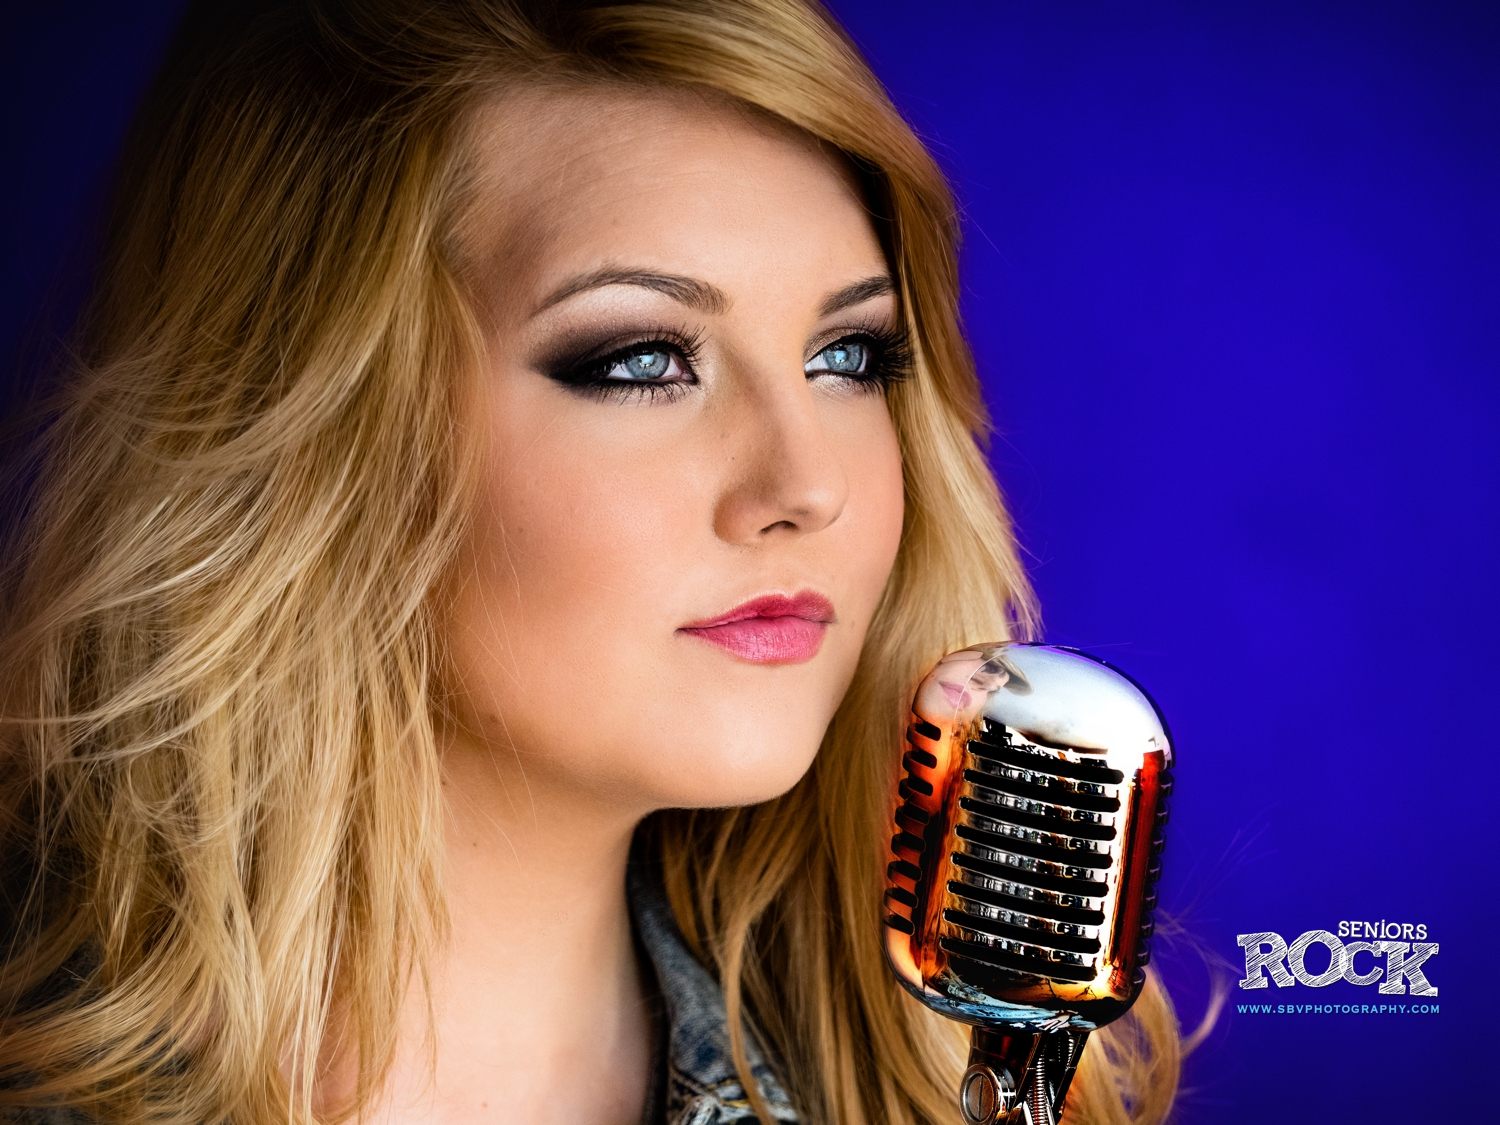 A high school senior takes to the microphone for her music themed senior picture session.